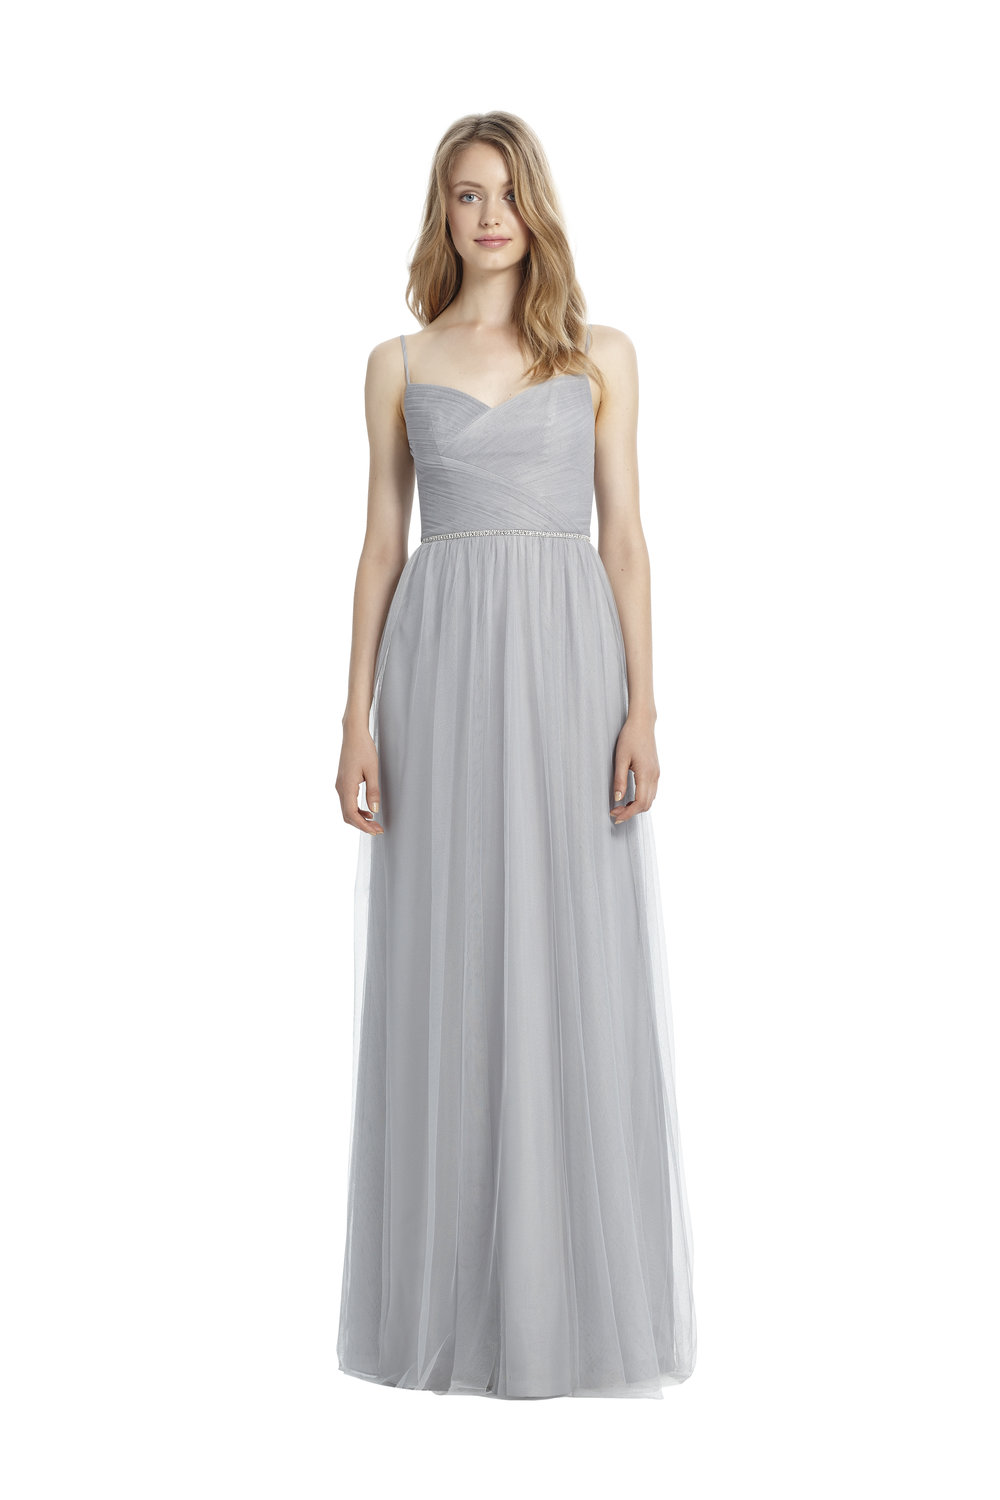 Monique Lhuillier 'Skyler' in Dove Tulle -